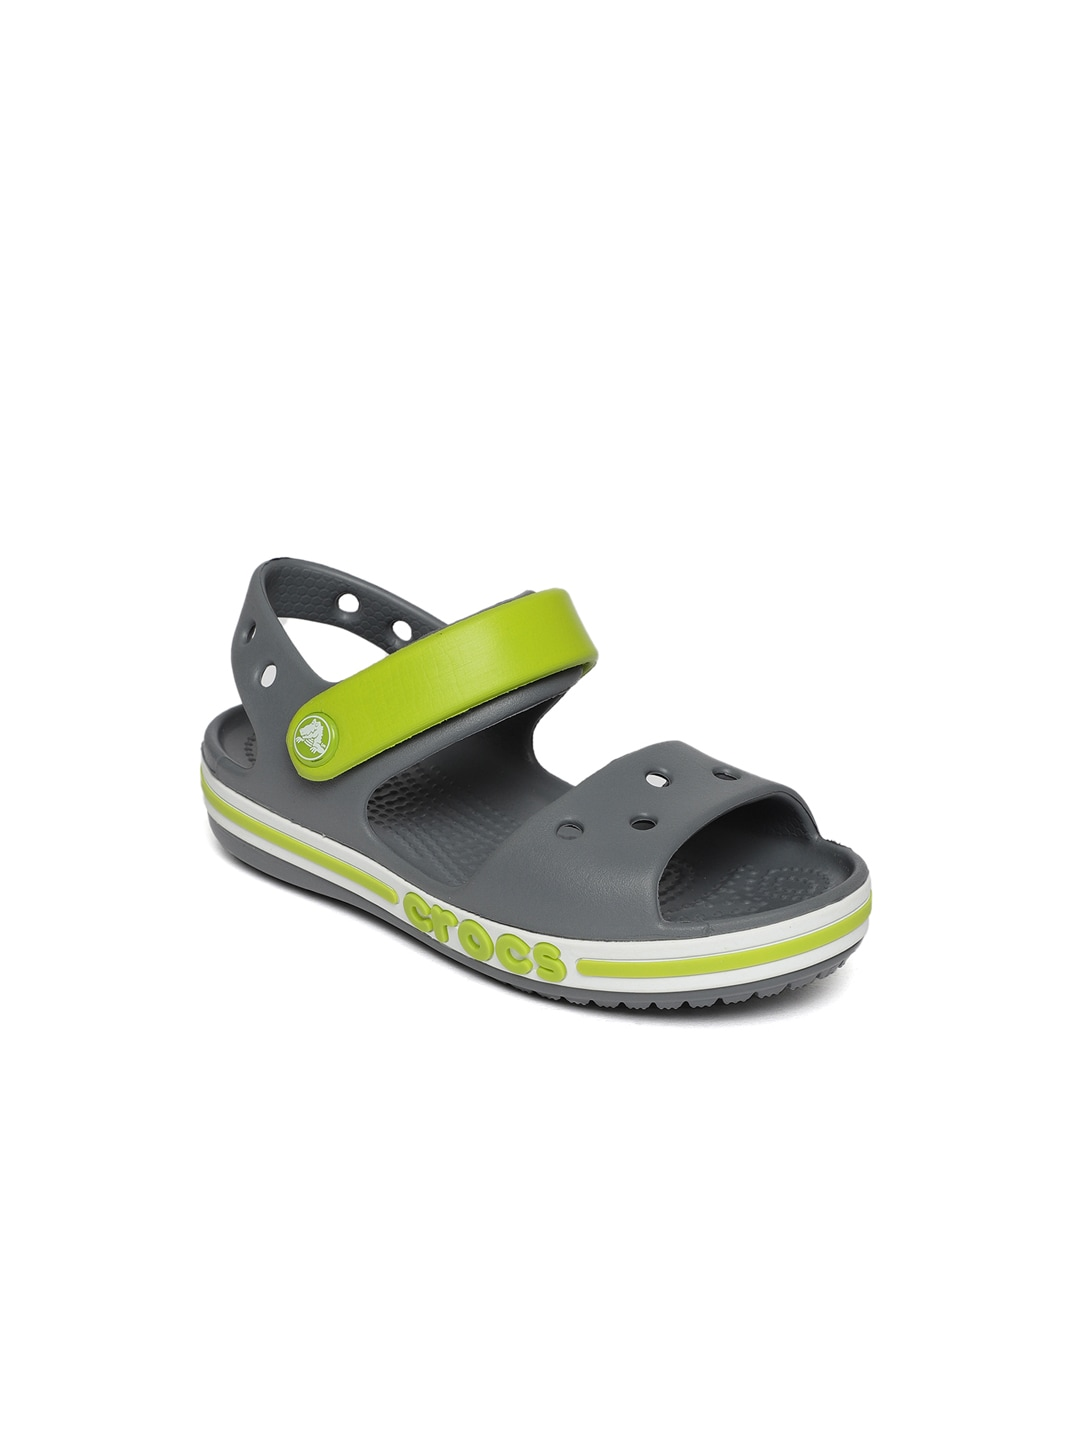 250dd88bb1cb Crocs Sandals - Buy Crocs Sandals Online in India